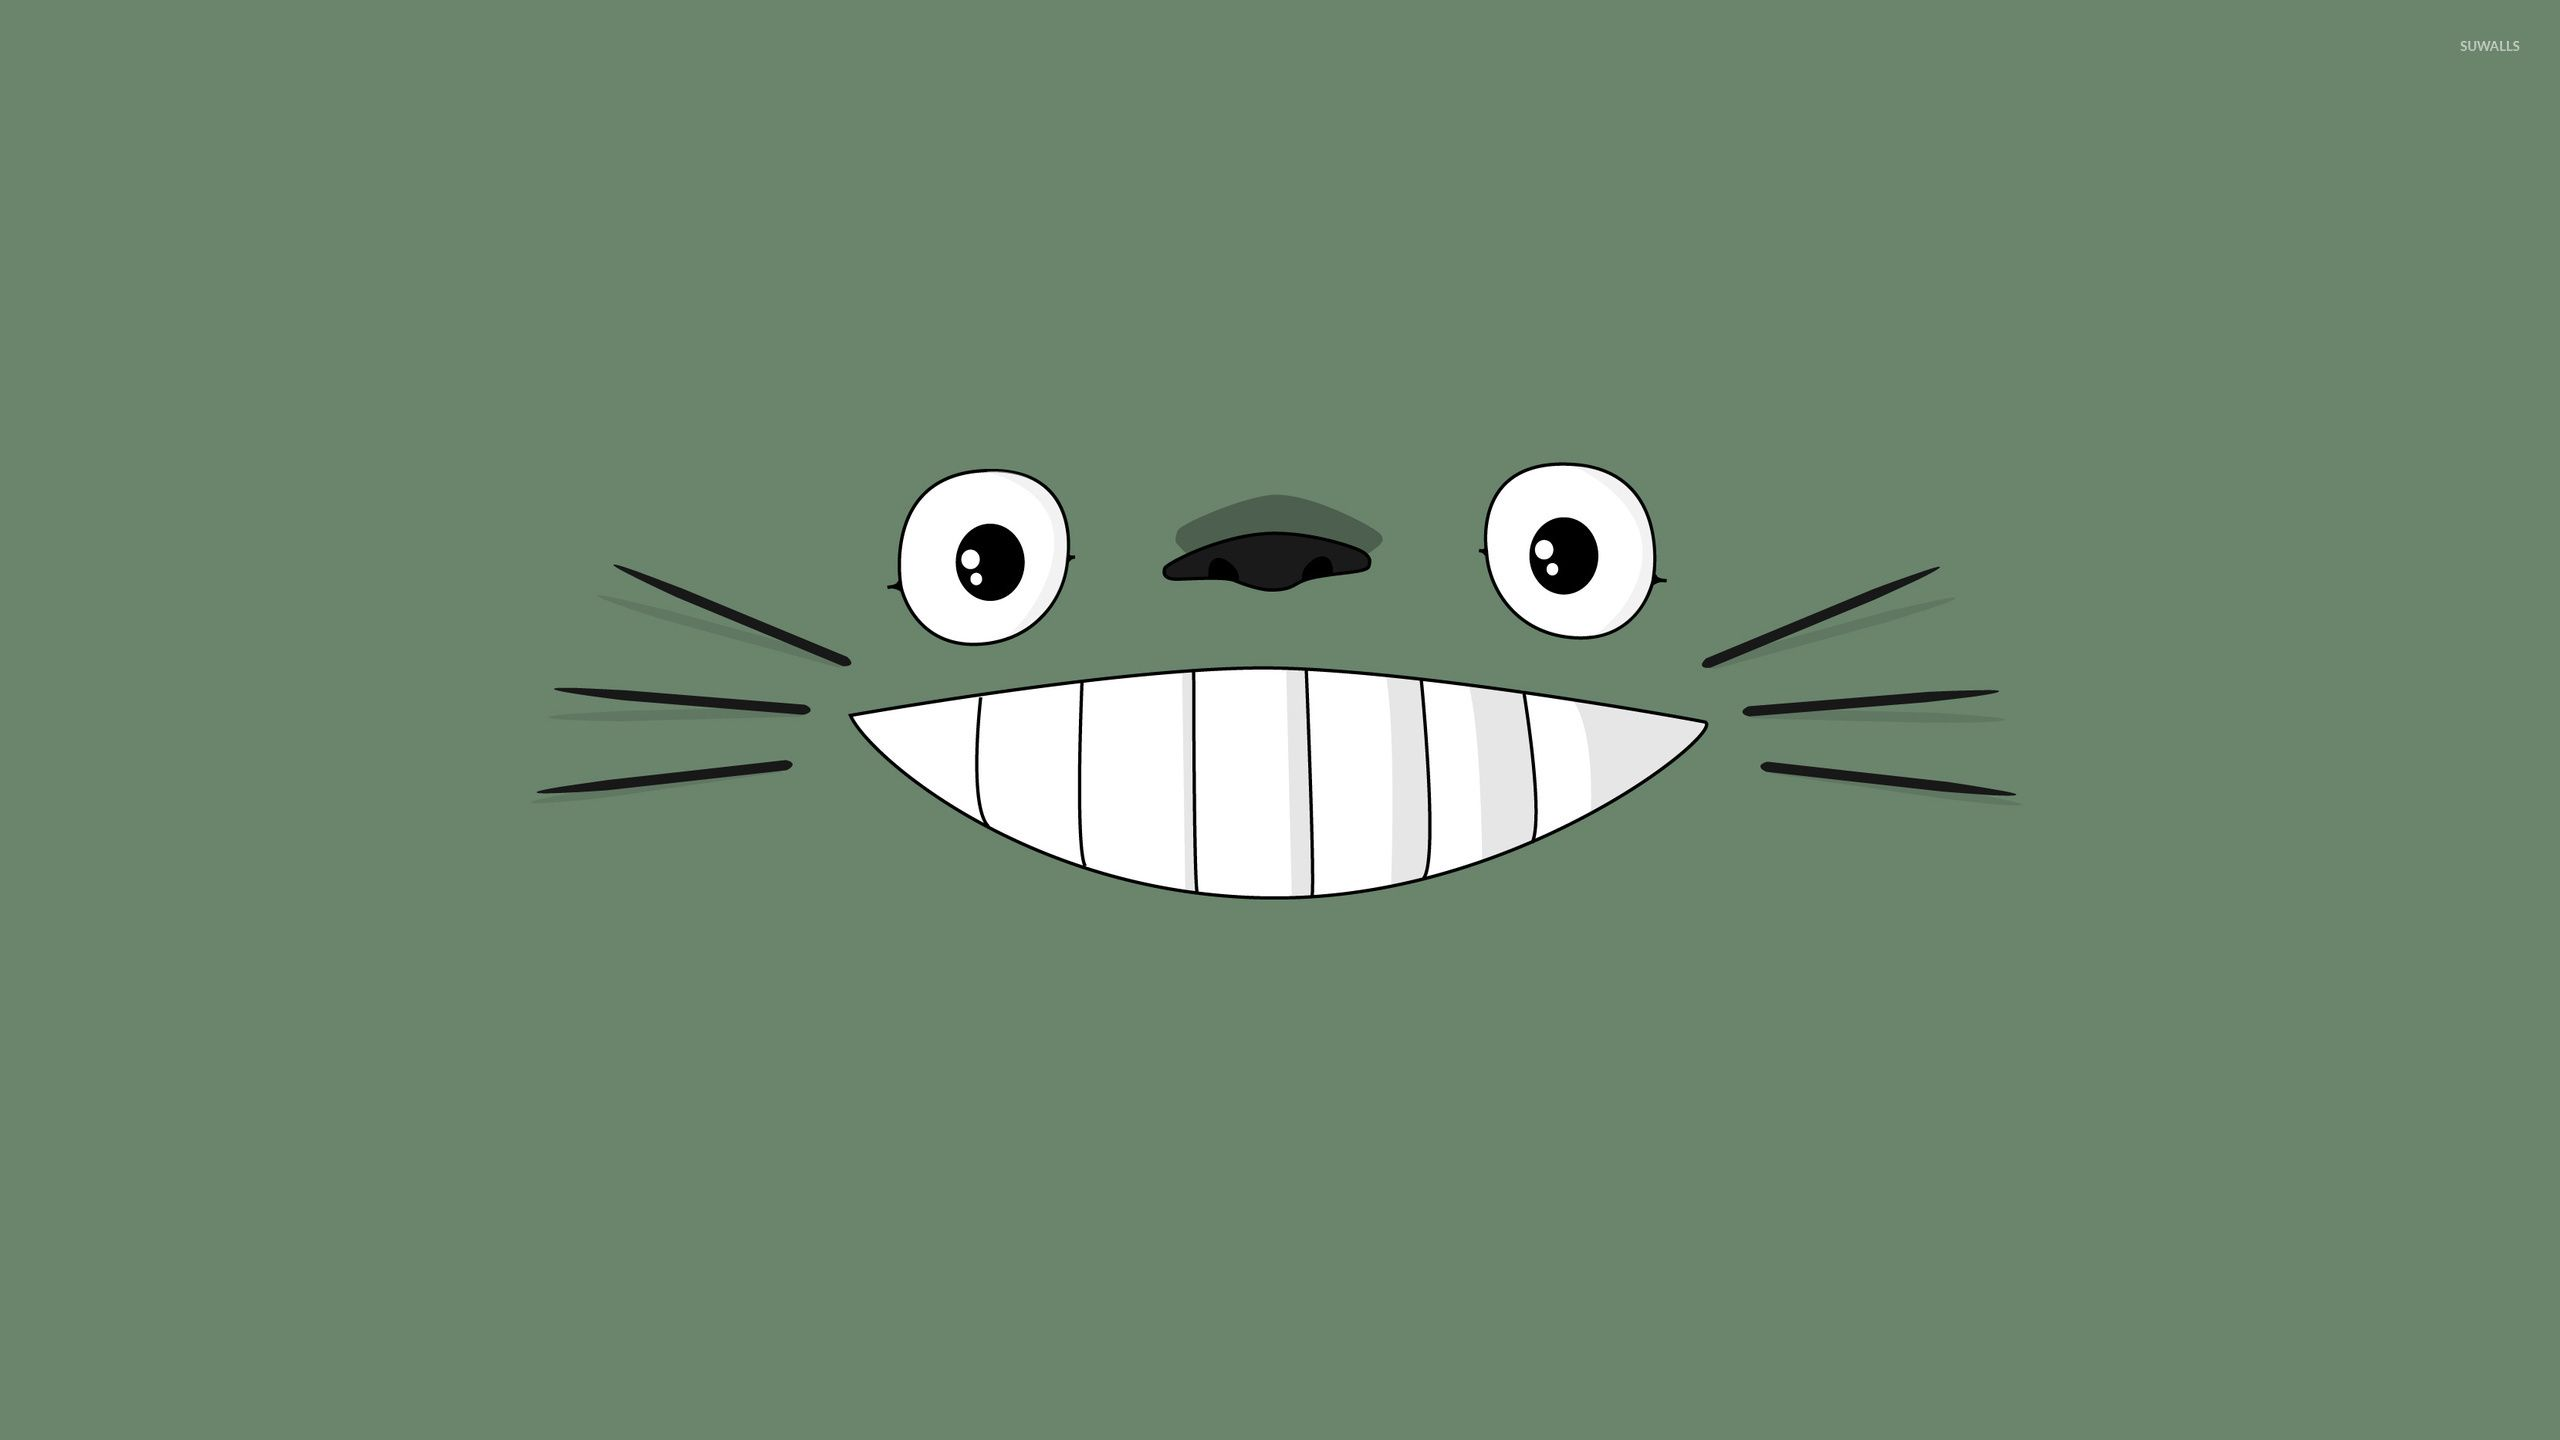 Totoro Wallpapers Top Free Totoro Backgrounds Wallpaperaccess